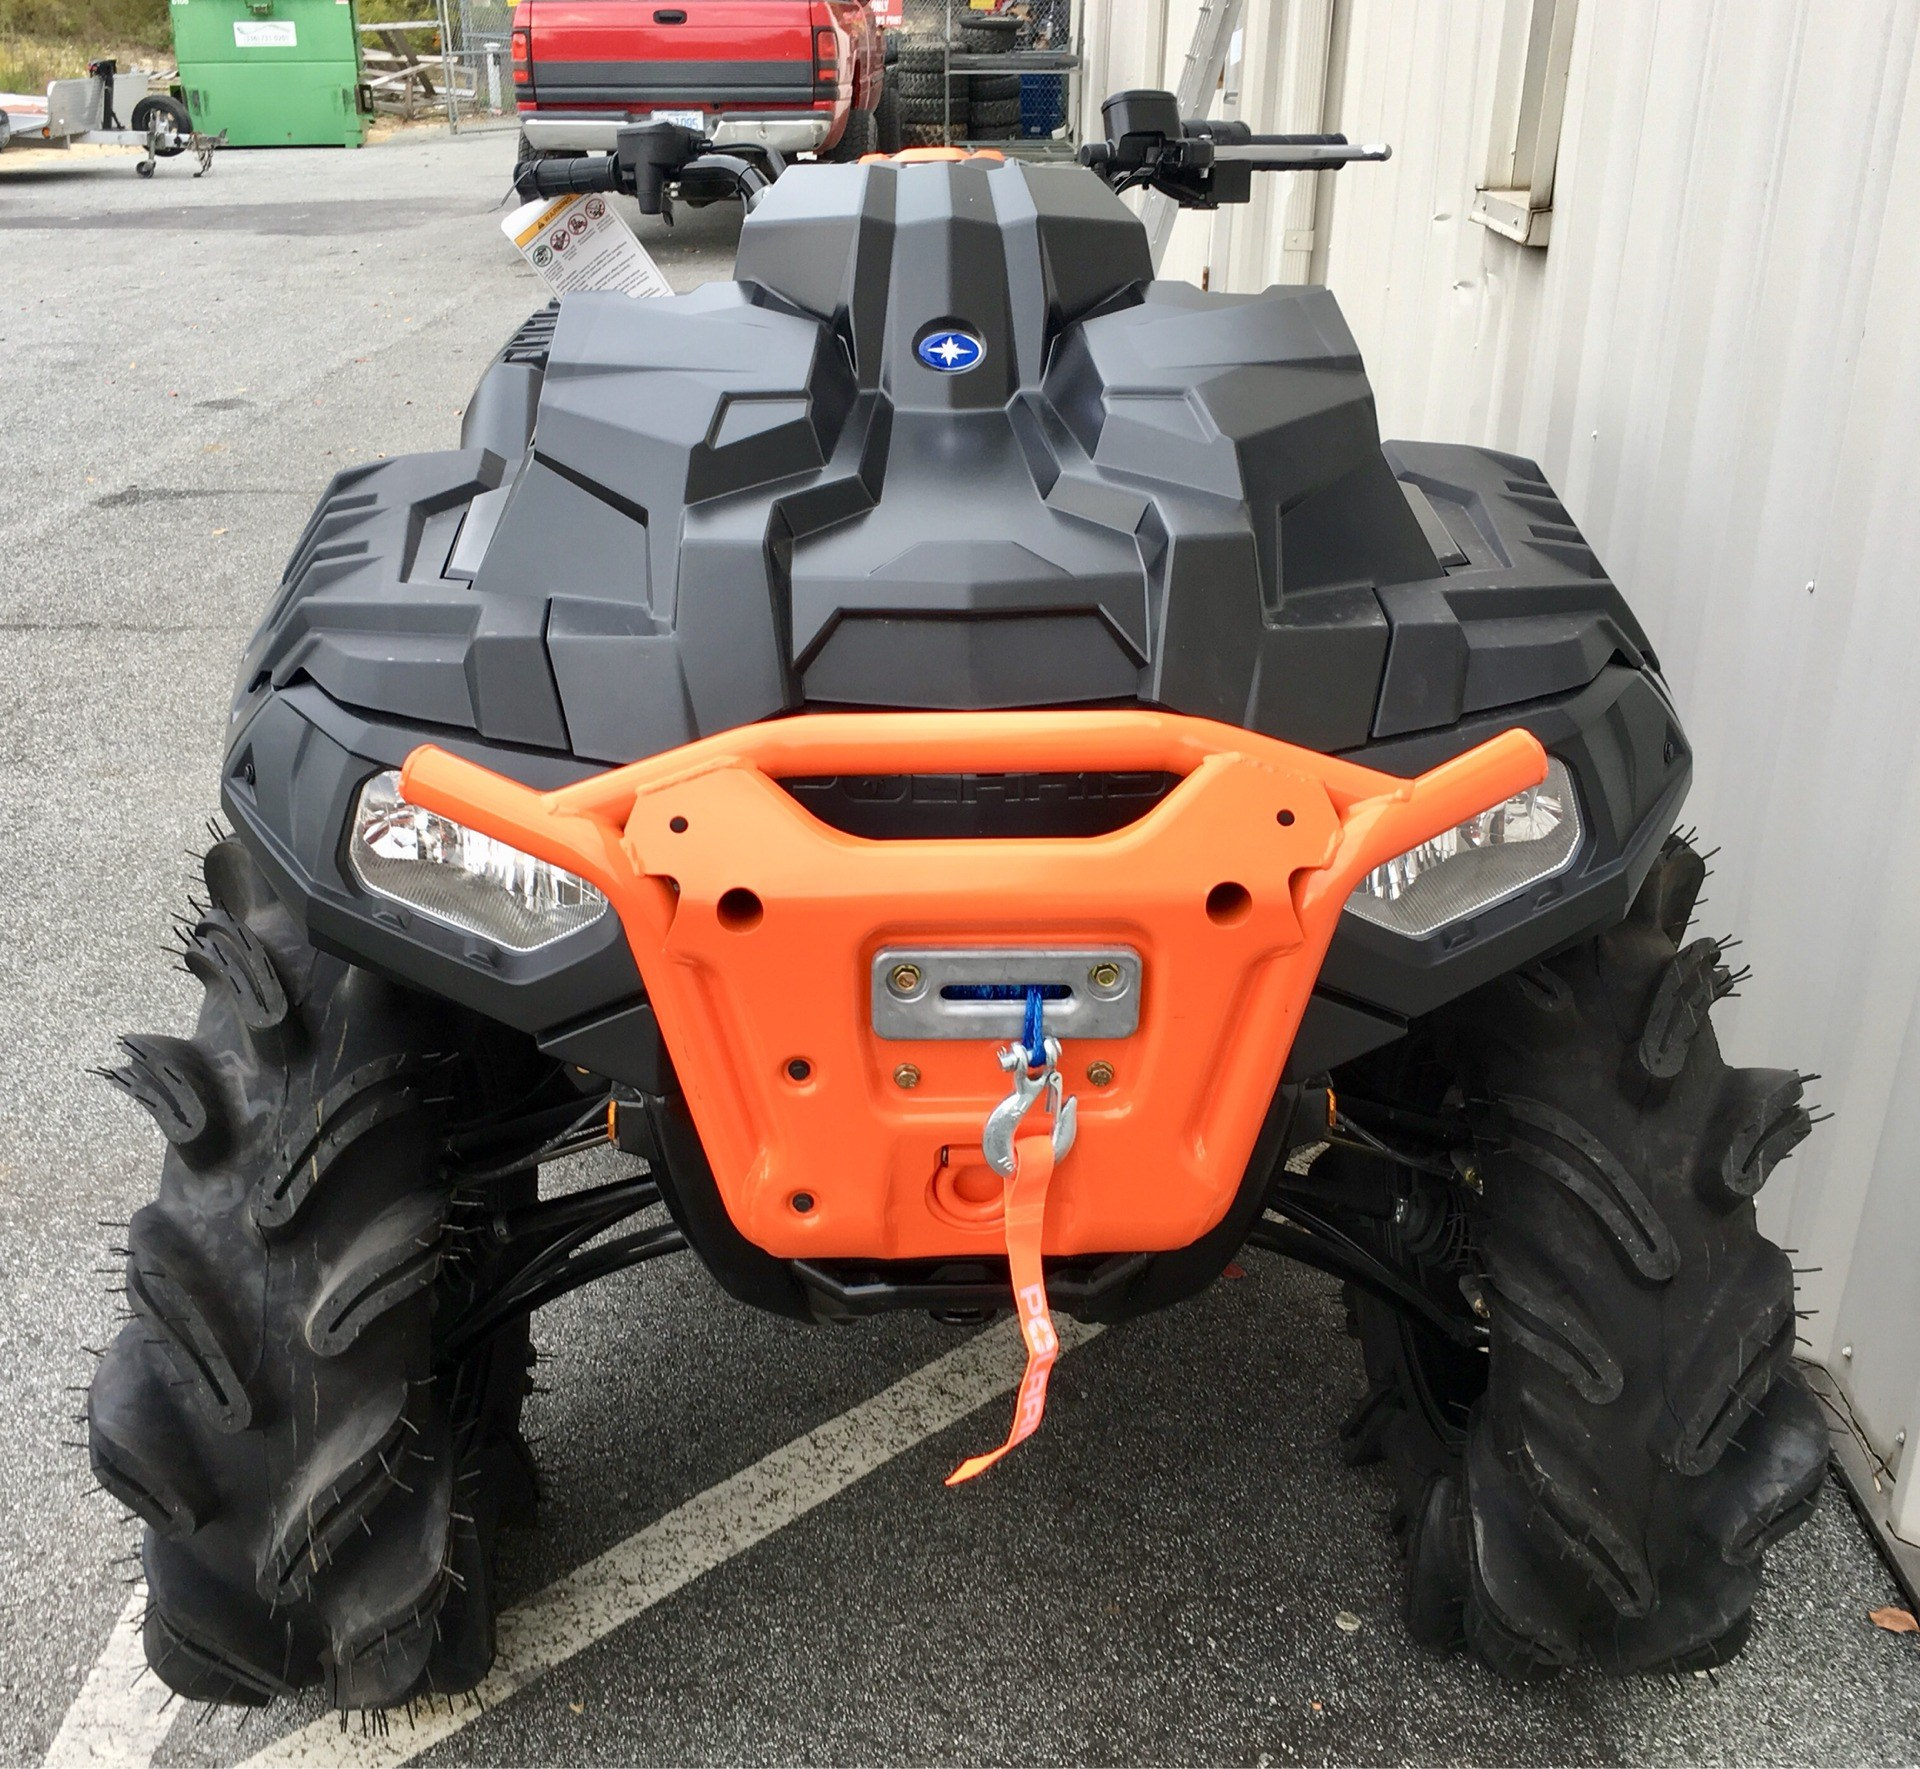 2019 Polaris Sportsman XP 1000 High Lifter Edition in High Point, North Carolina